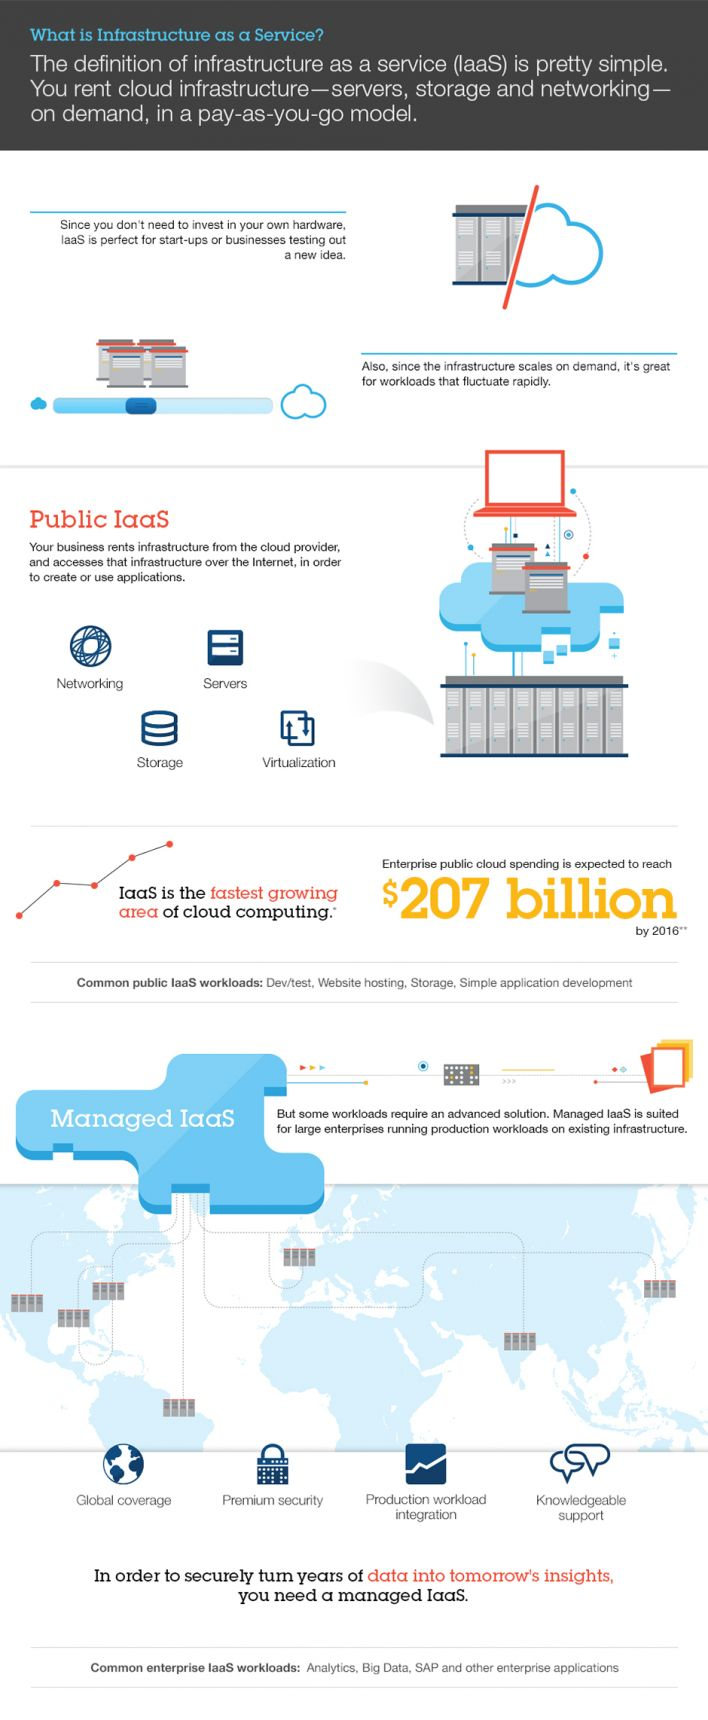 75 best IBM Cloud images on Pinterest | Ibm, Clouds and Cloud ...